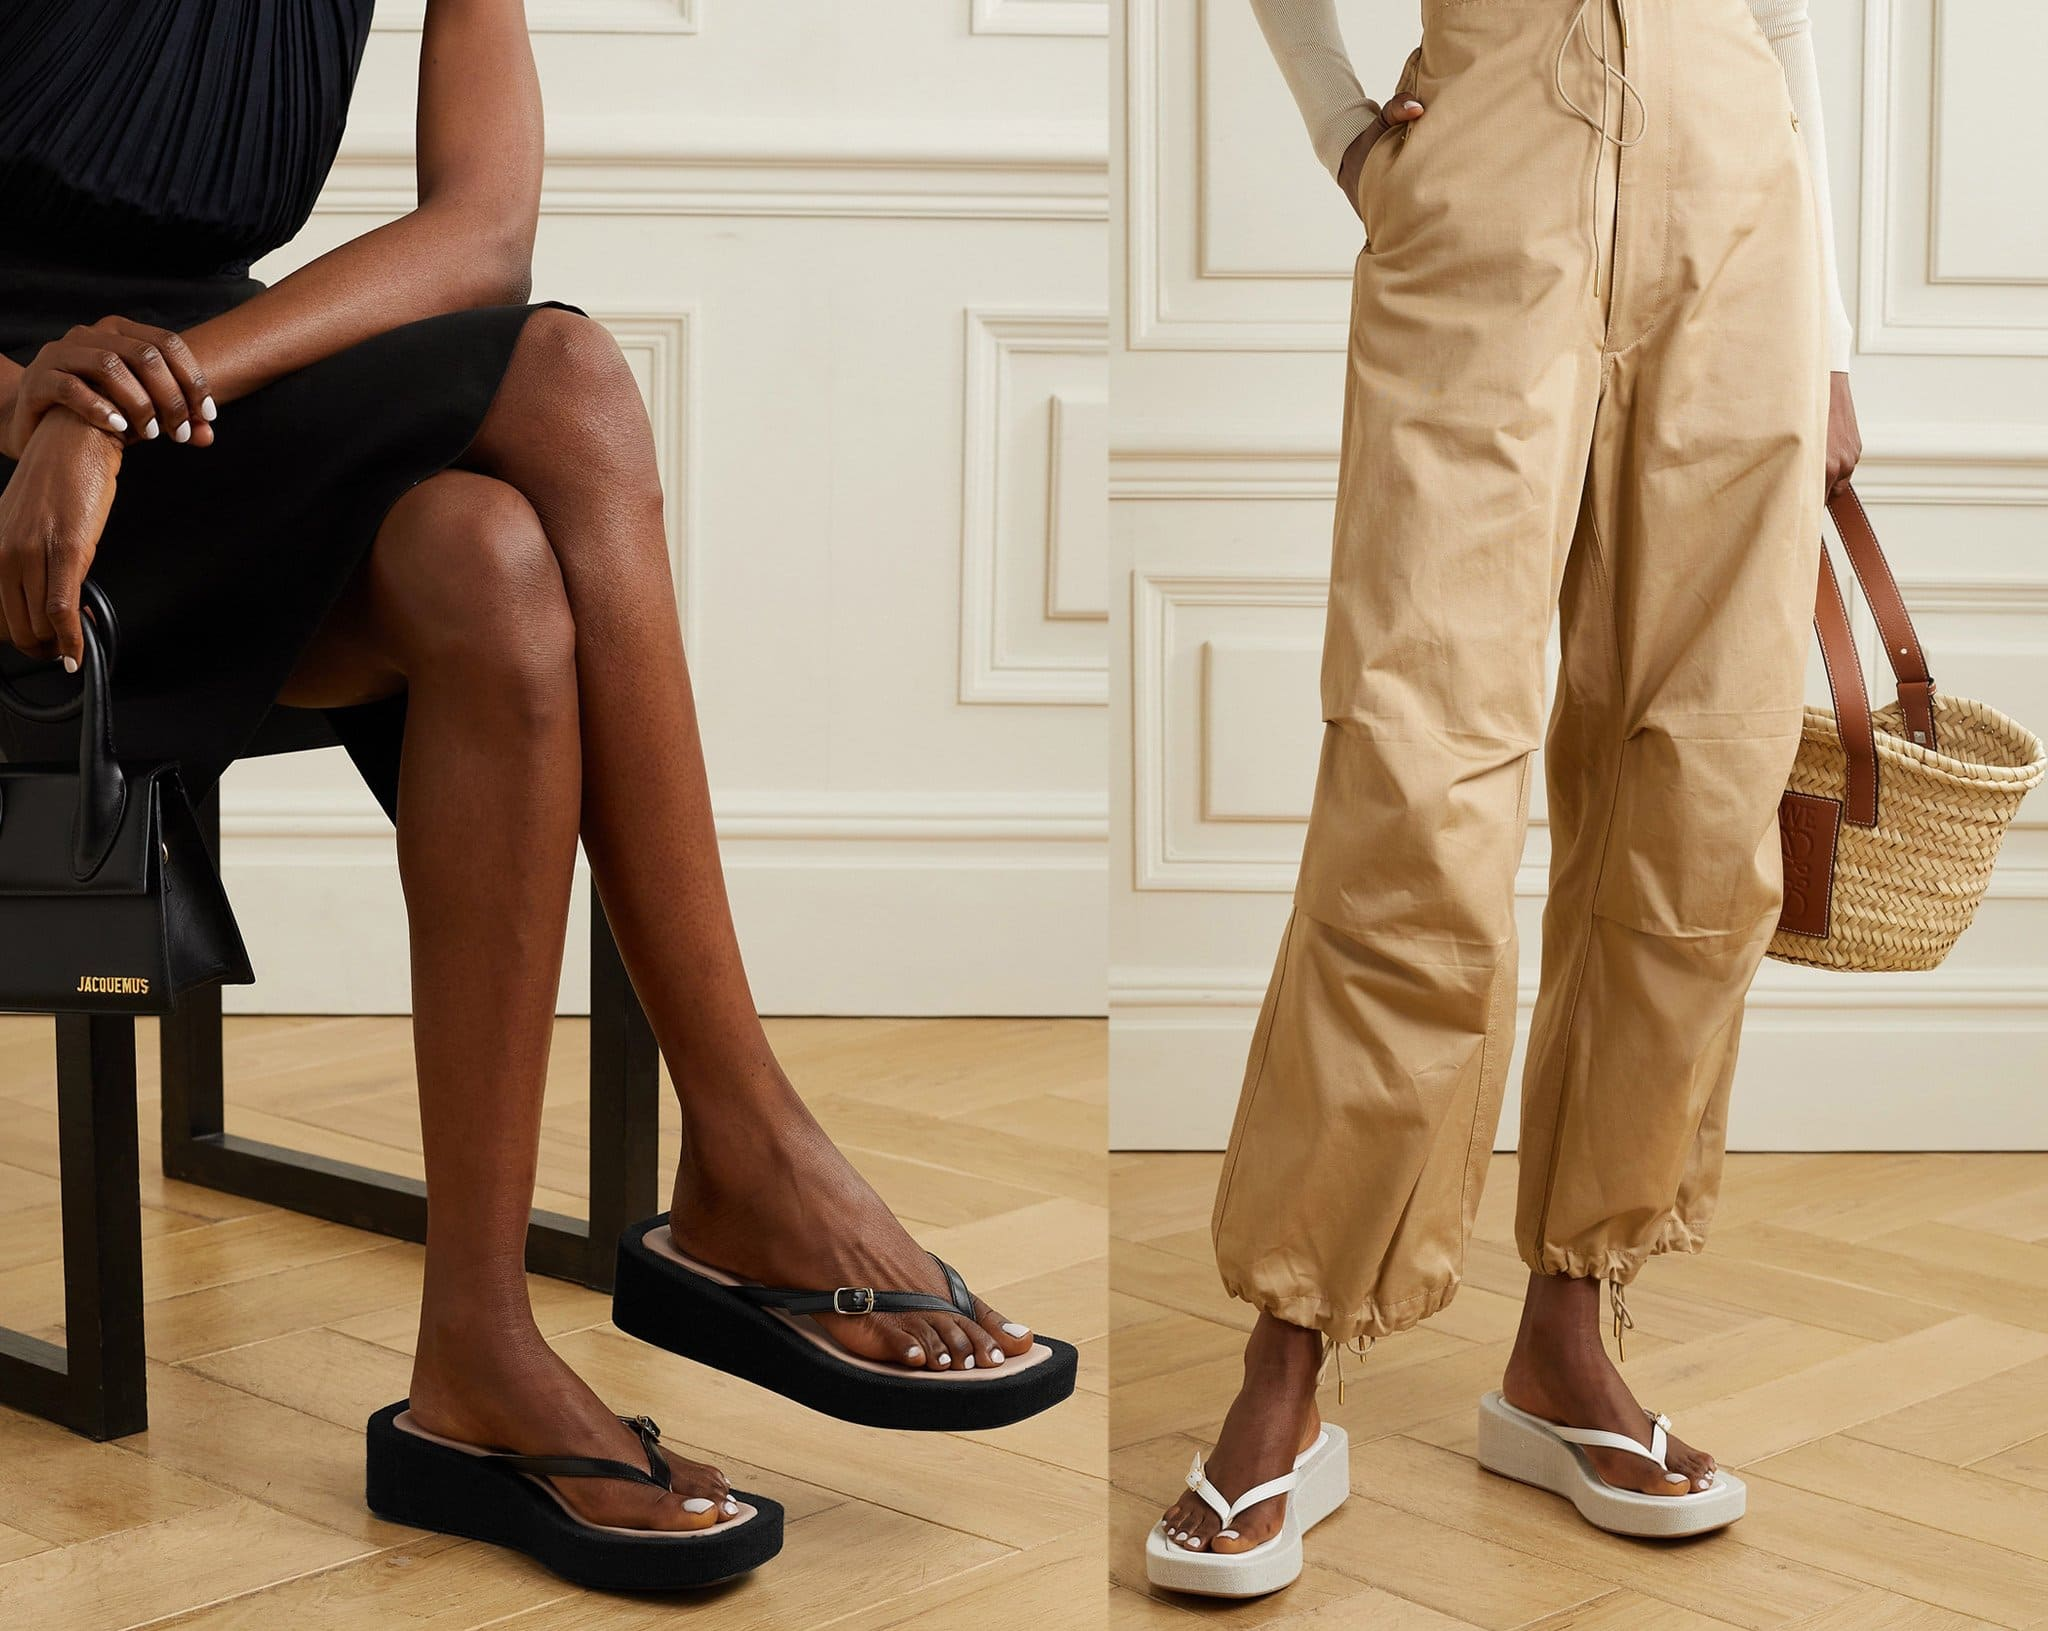 The '90s-inspired Les Tatanes Lin platform flip-flops debuted on Jacquemus Spring 2021 runway